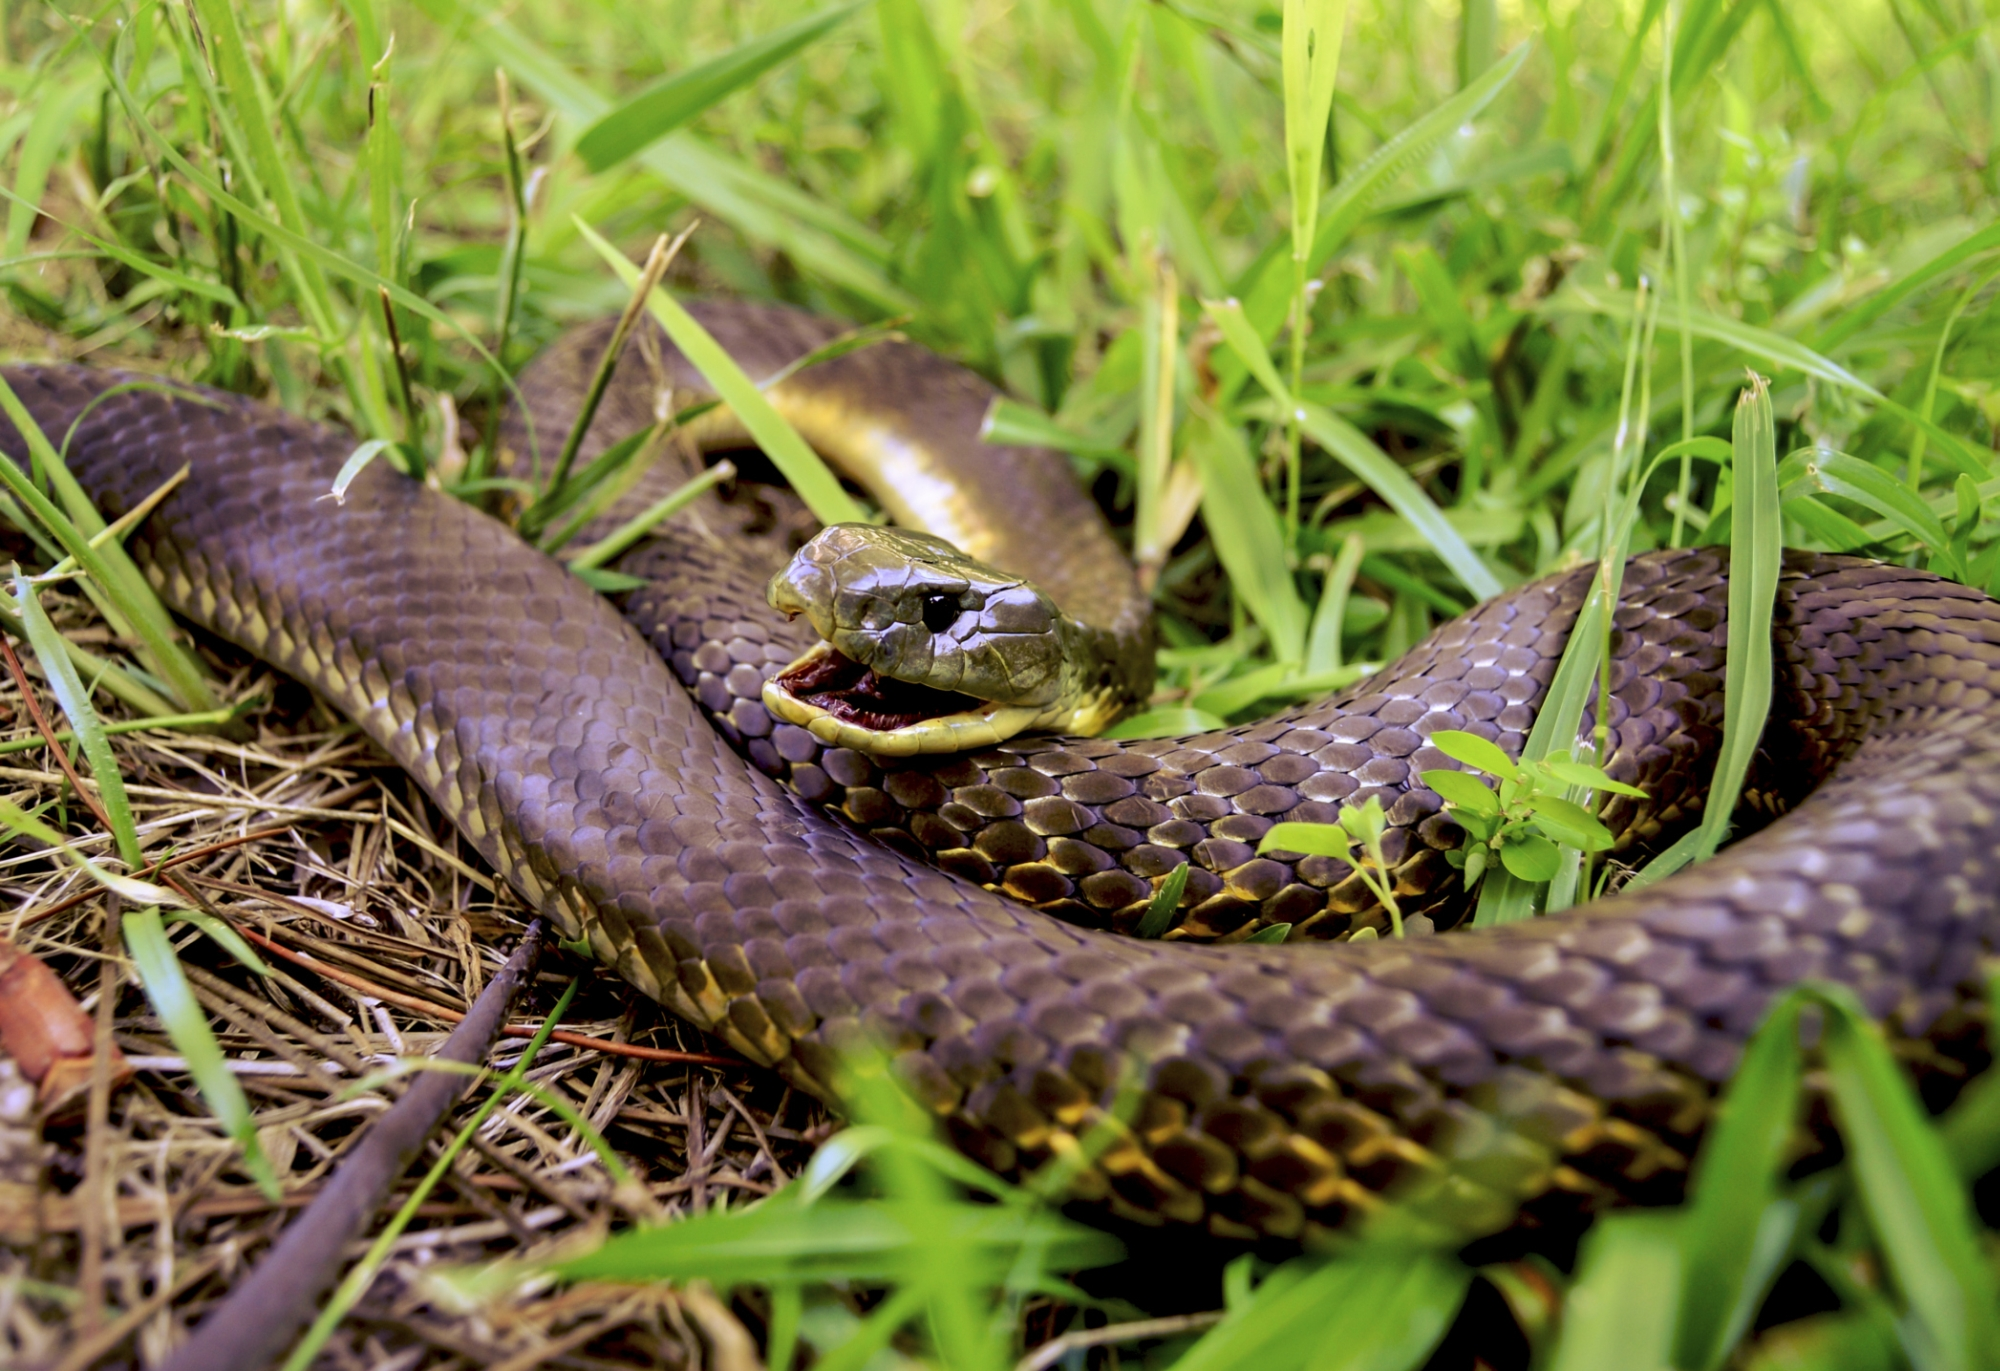 Tiger snakes are among those present in City of Stirling bushland.